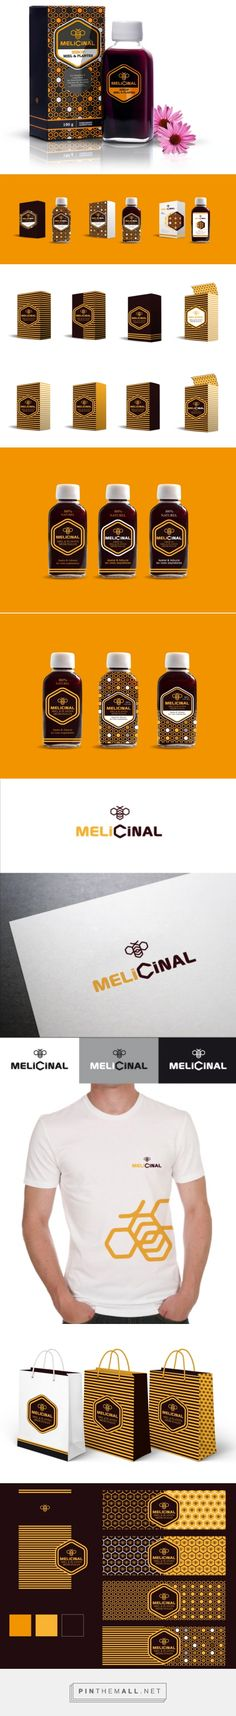 Melicinal by Patricia Robertson at Coroflot.com curated by Packaging Diva PD. Nice identity patterned packaging project.